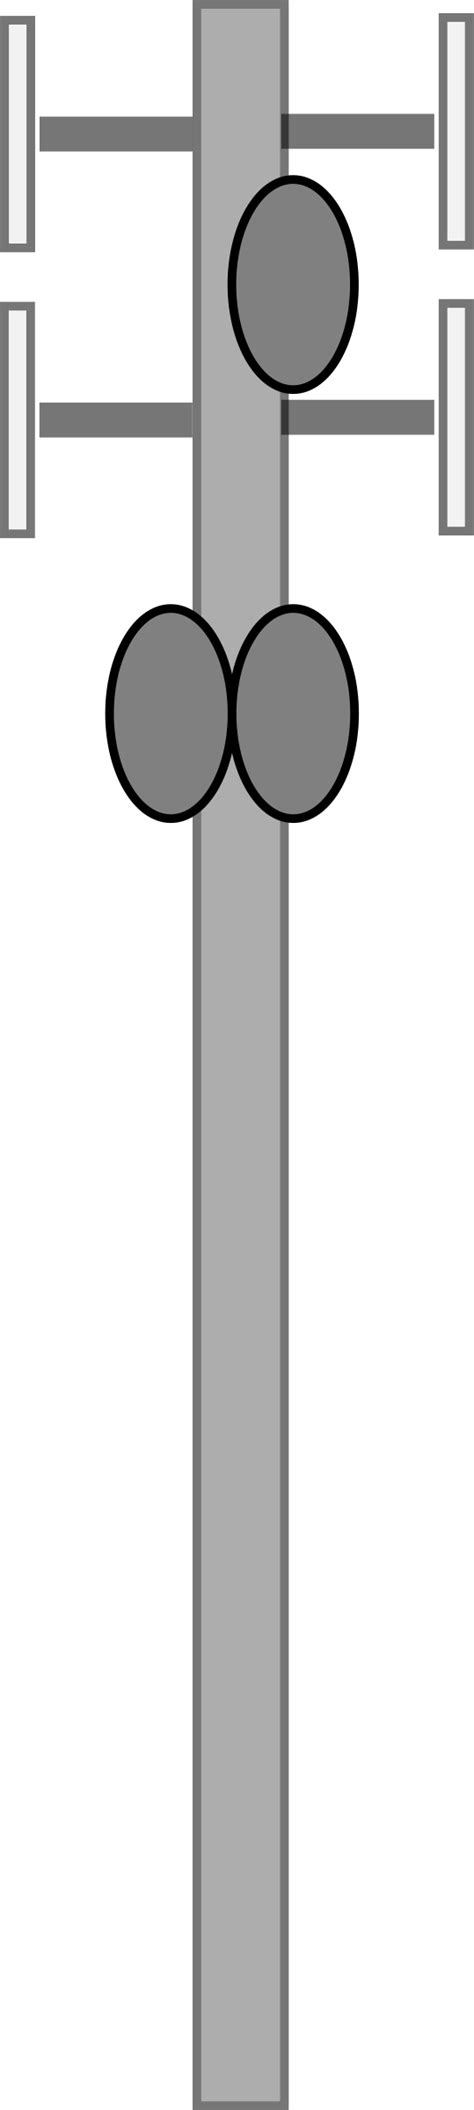 clipart cell phone tower